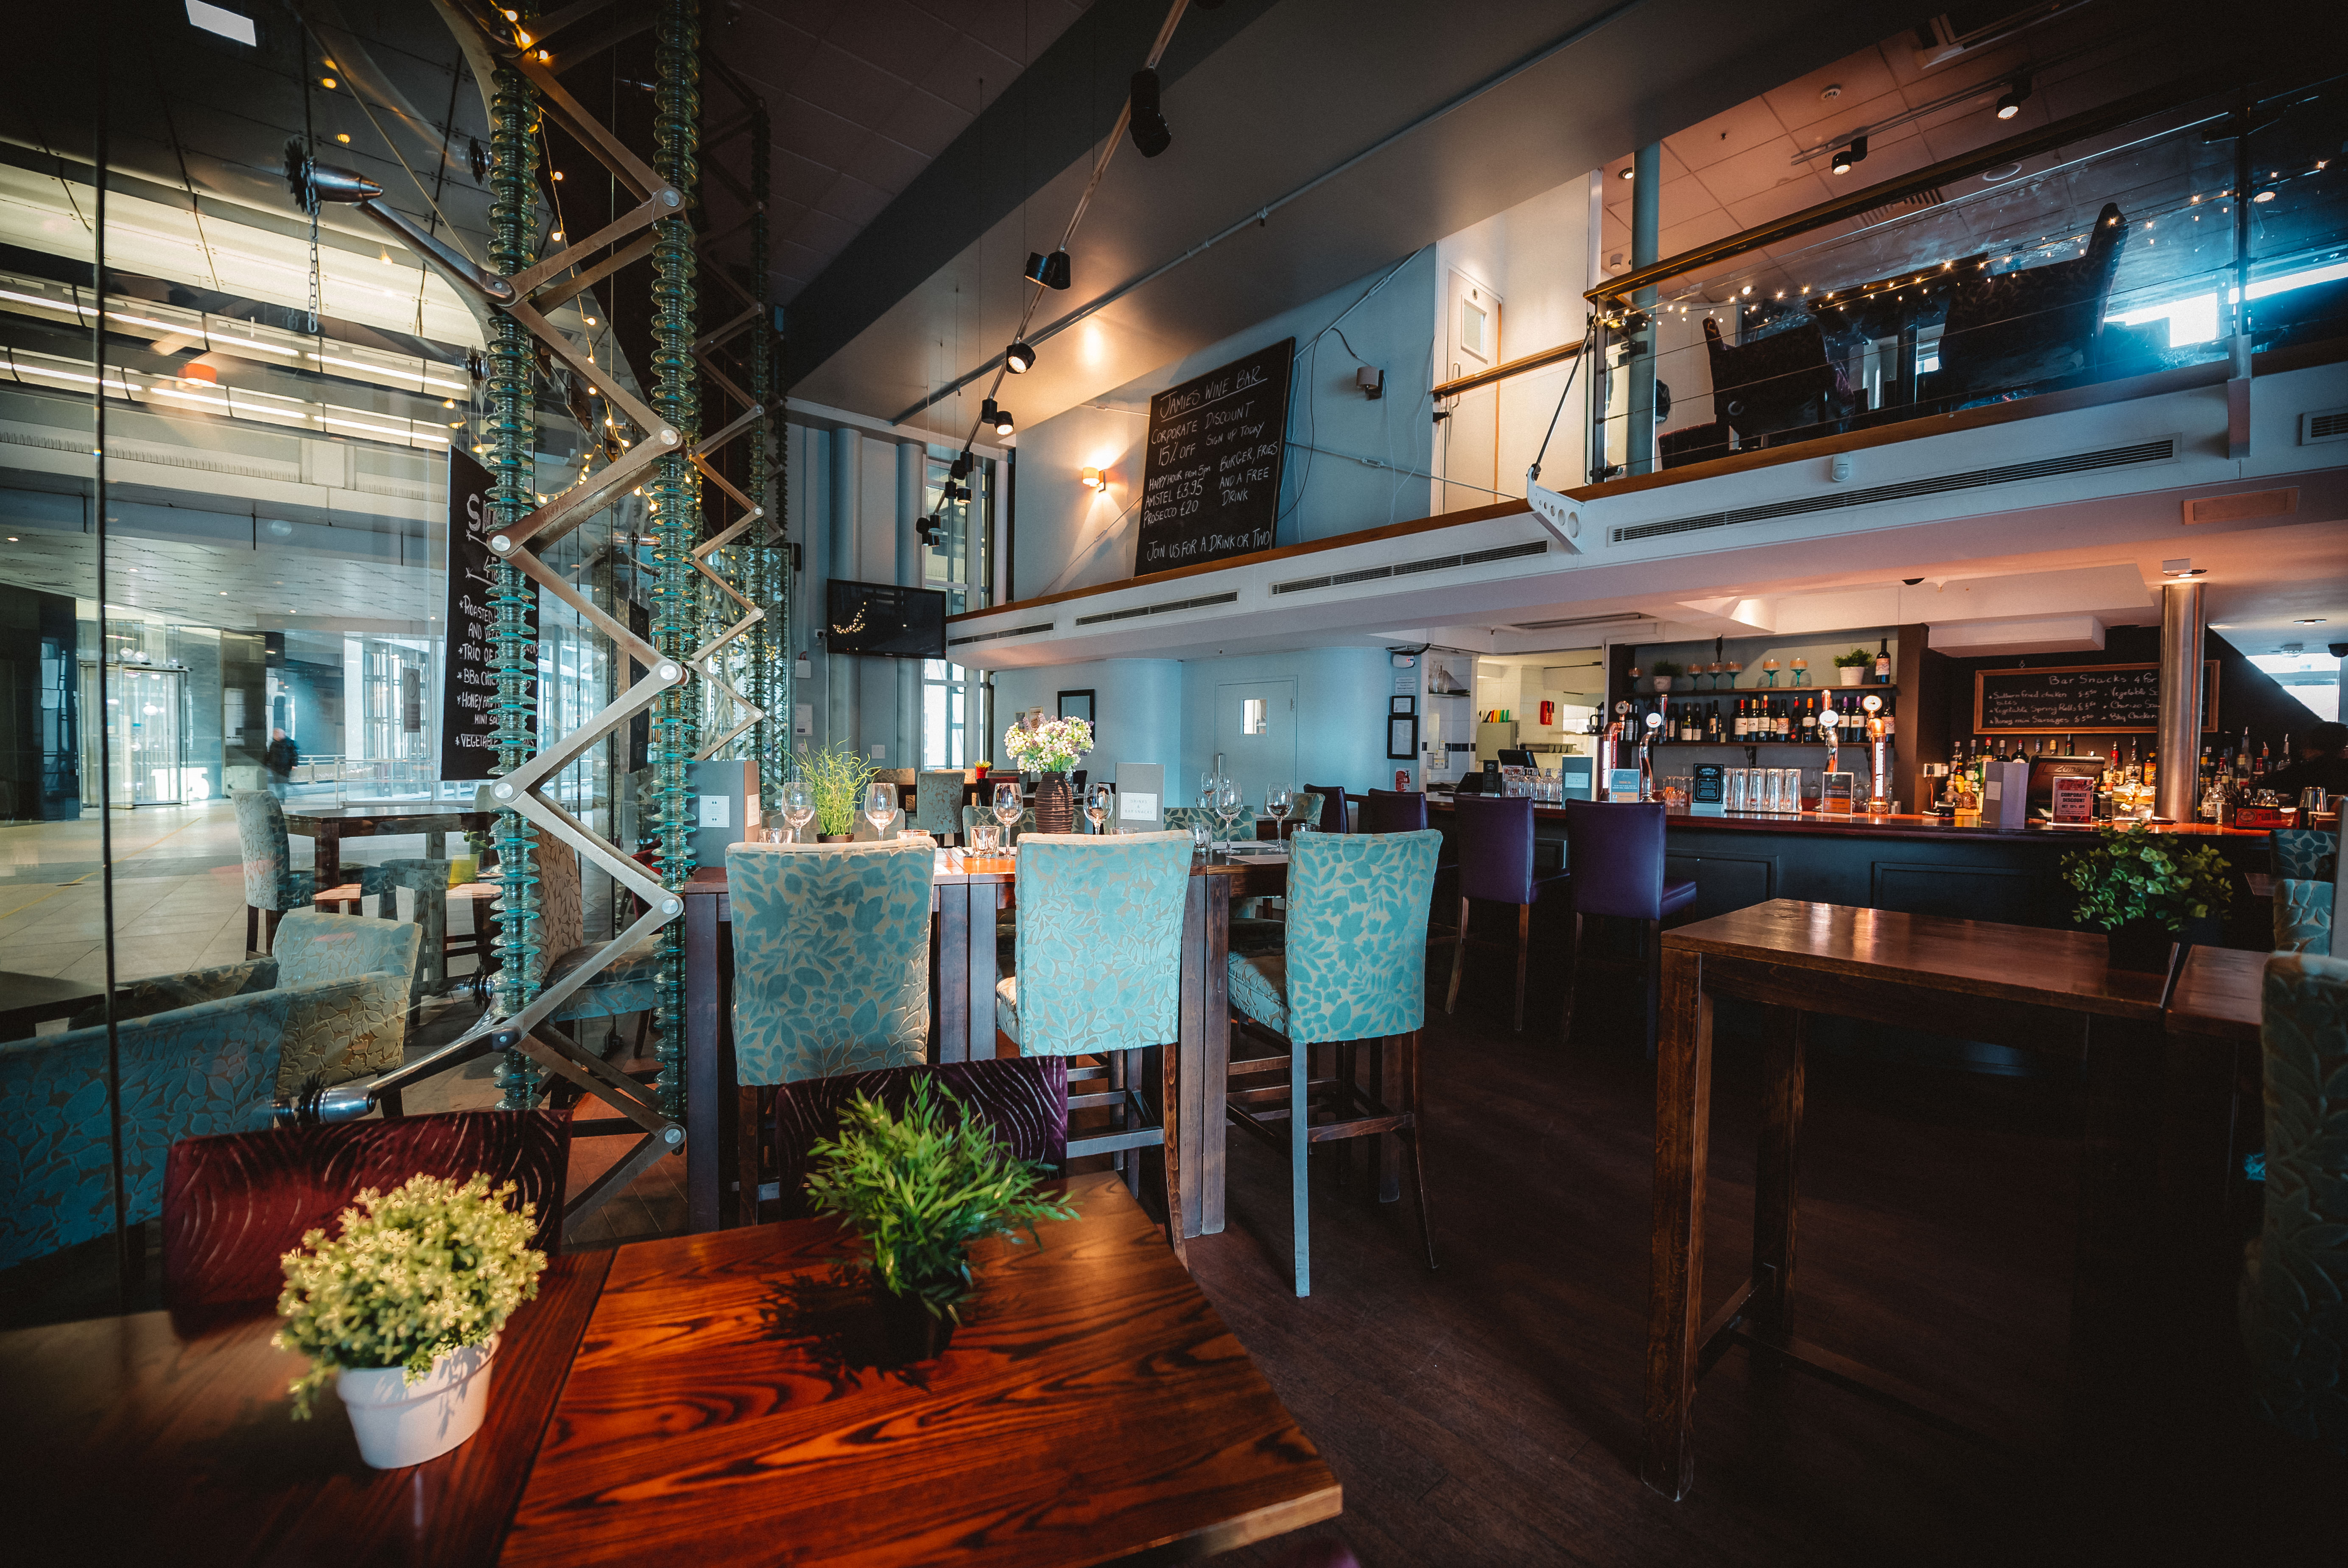 Great Restaurants For Big Groups In London | DesignMyNight